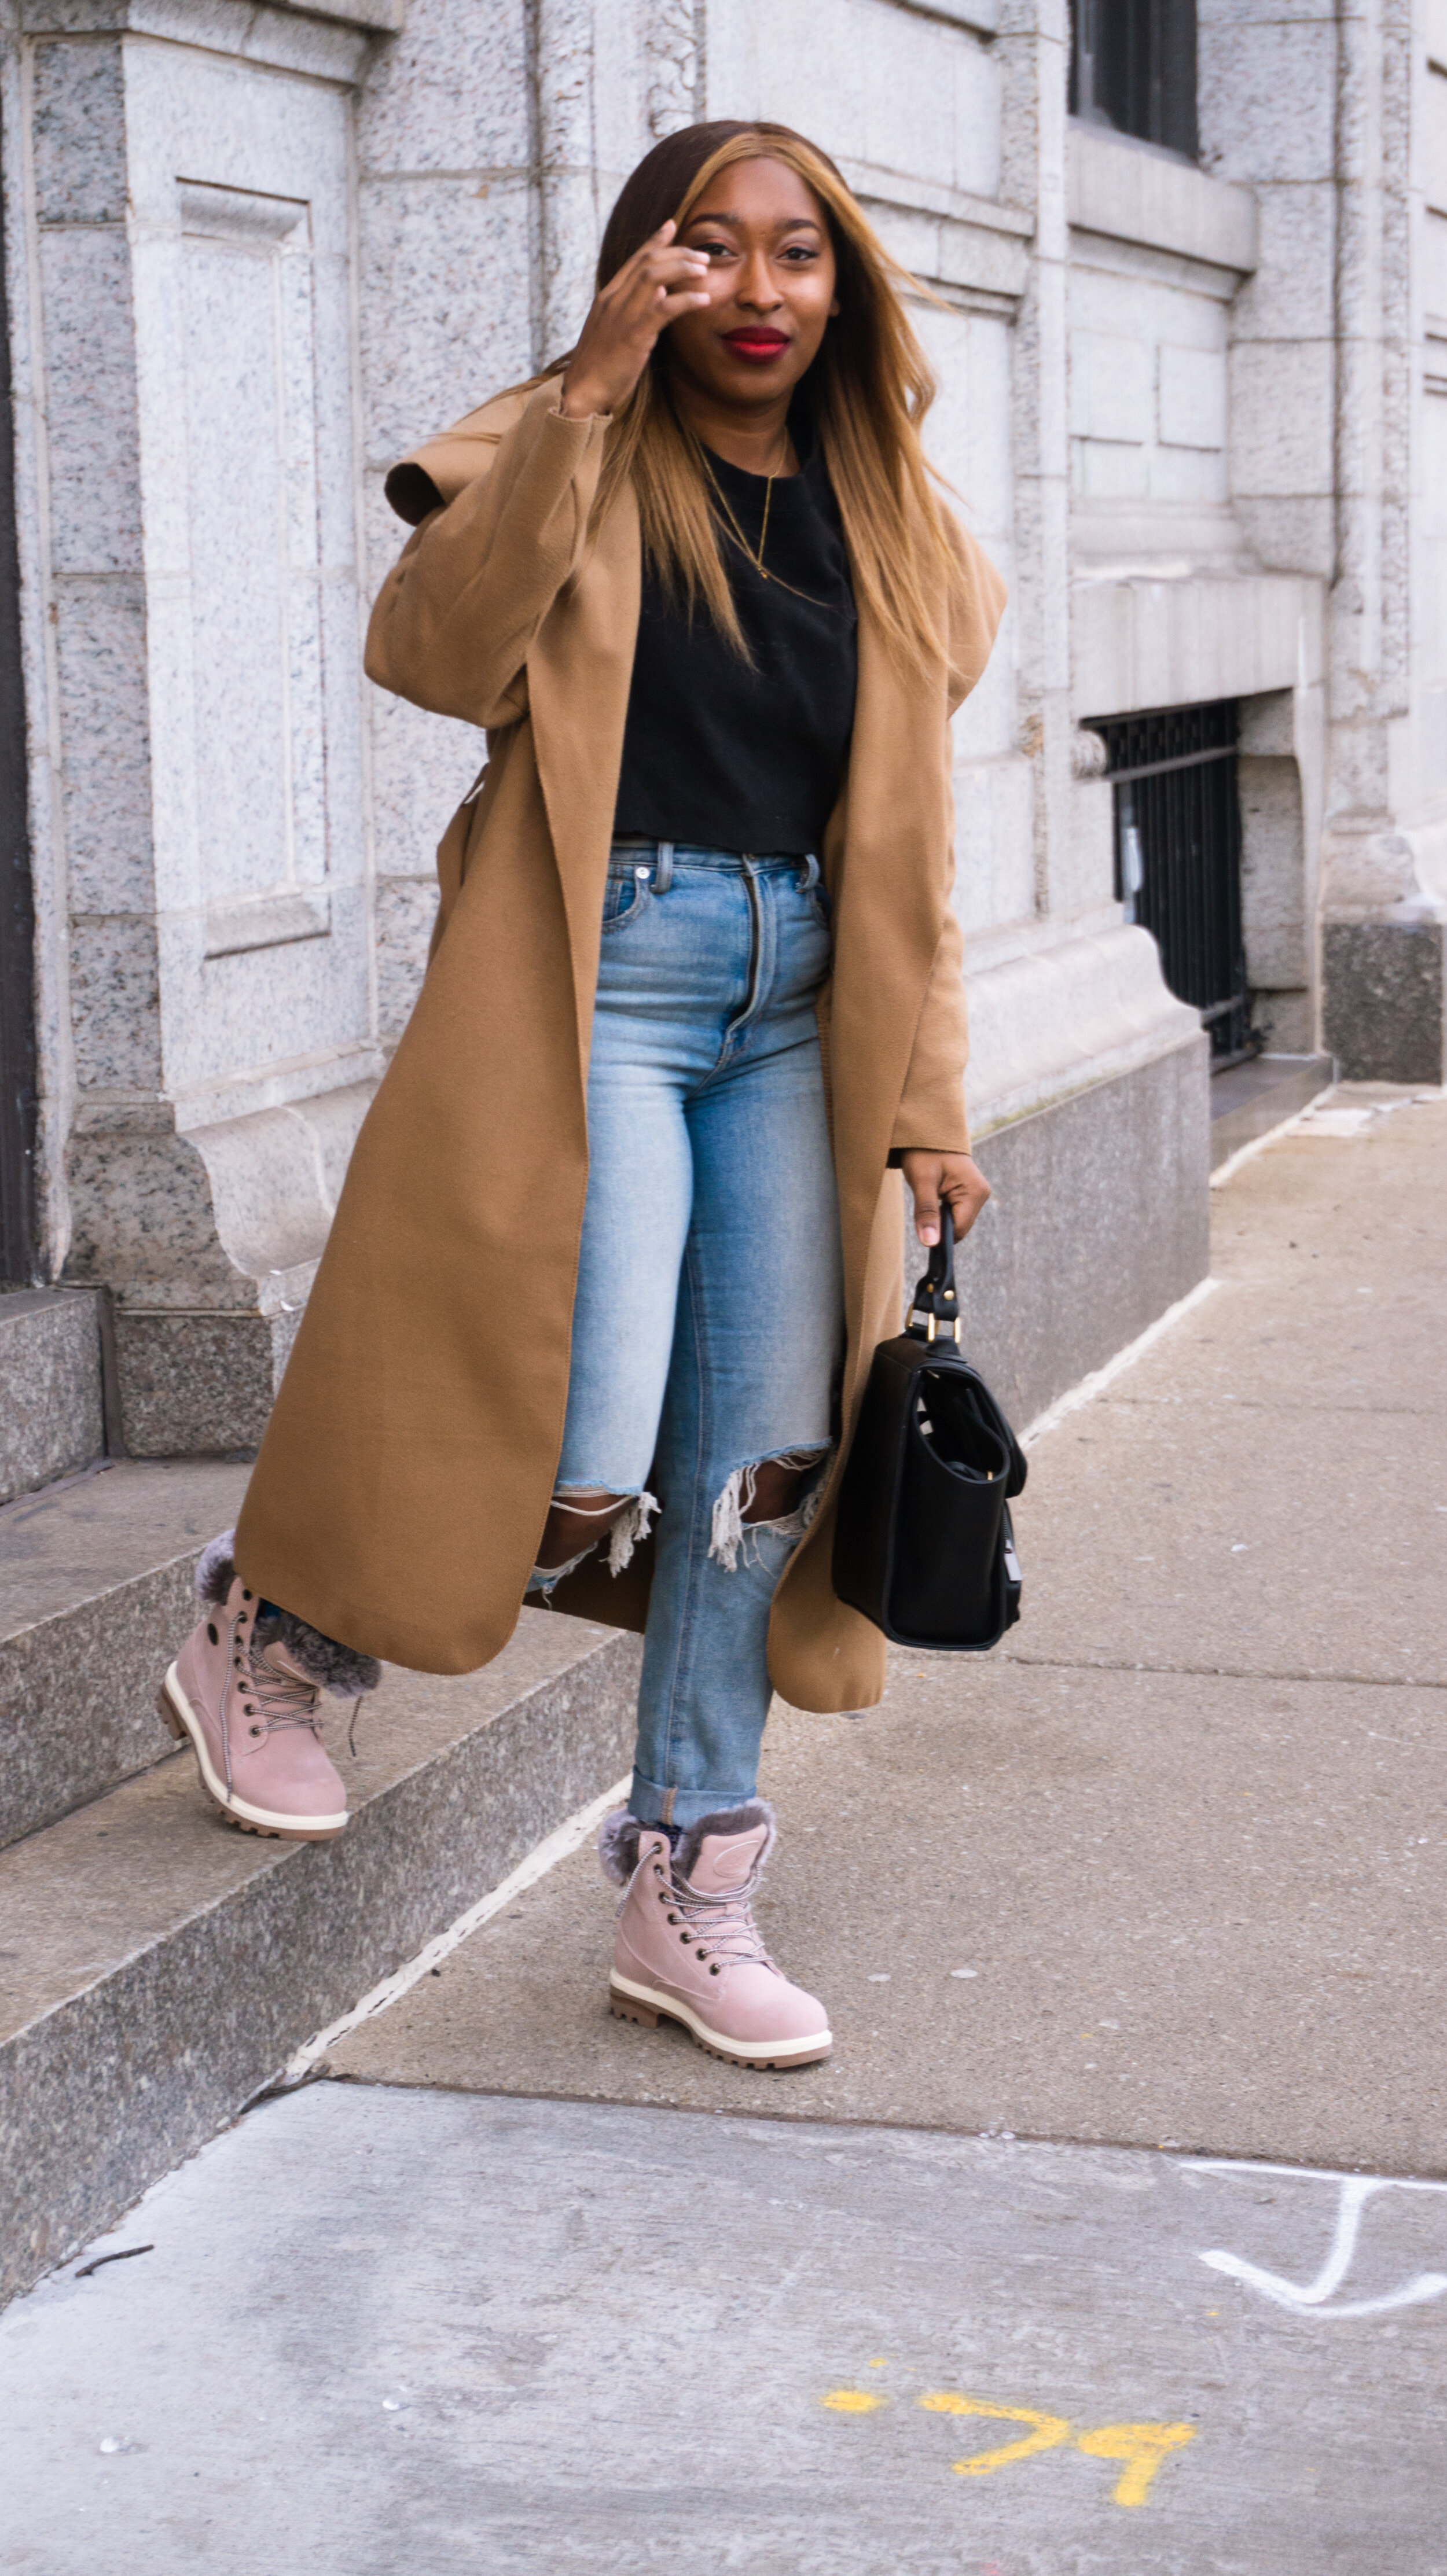 How To Dress For The Winter Weather Autum Love